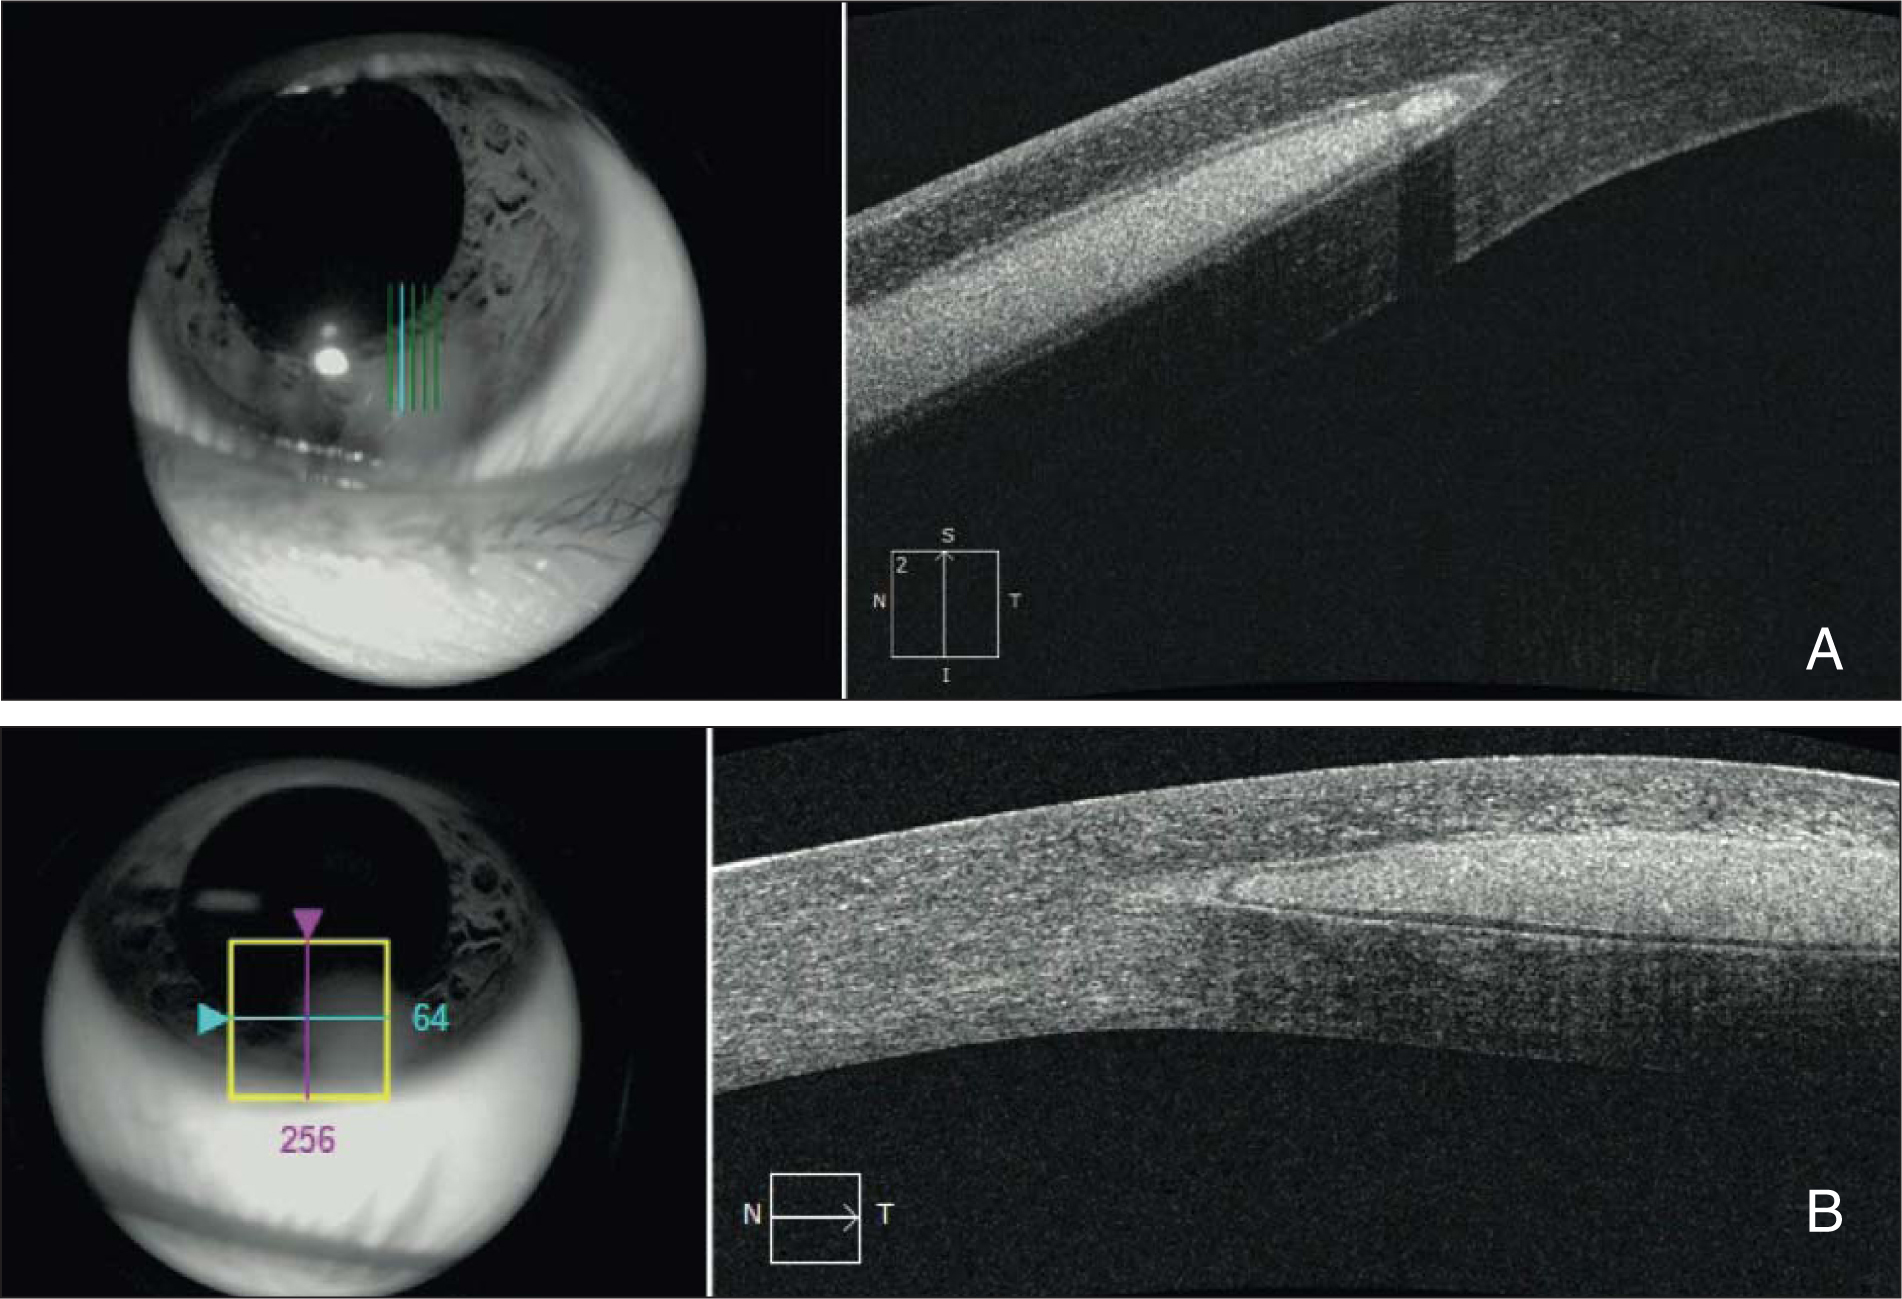 Anterior segment optical coherence tomography (OCT) demonstrating an intrastromal lesion. (A) Cross-sectional vertical anterior segment OCT of scalloped edge, and (B) cross-sectional horizontal anterior segment OCT of peripheral edge.